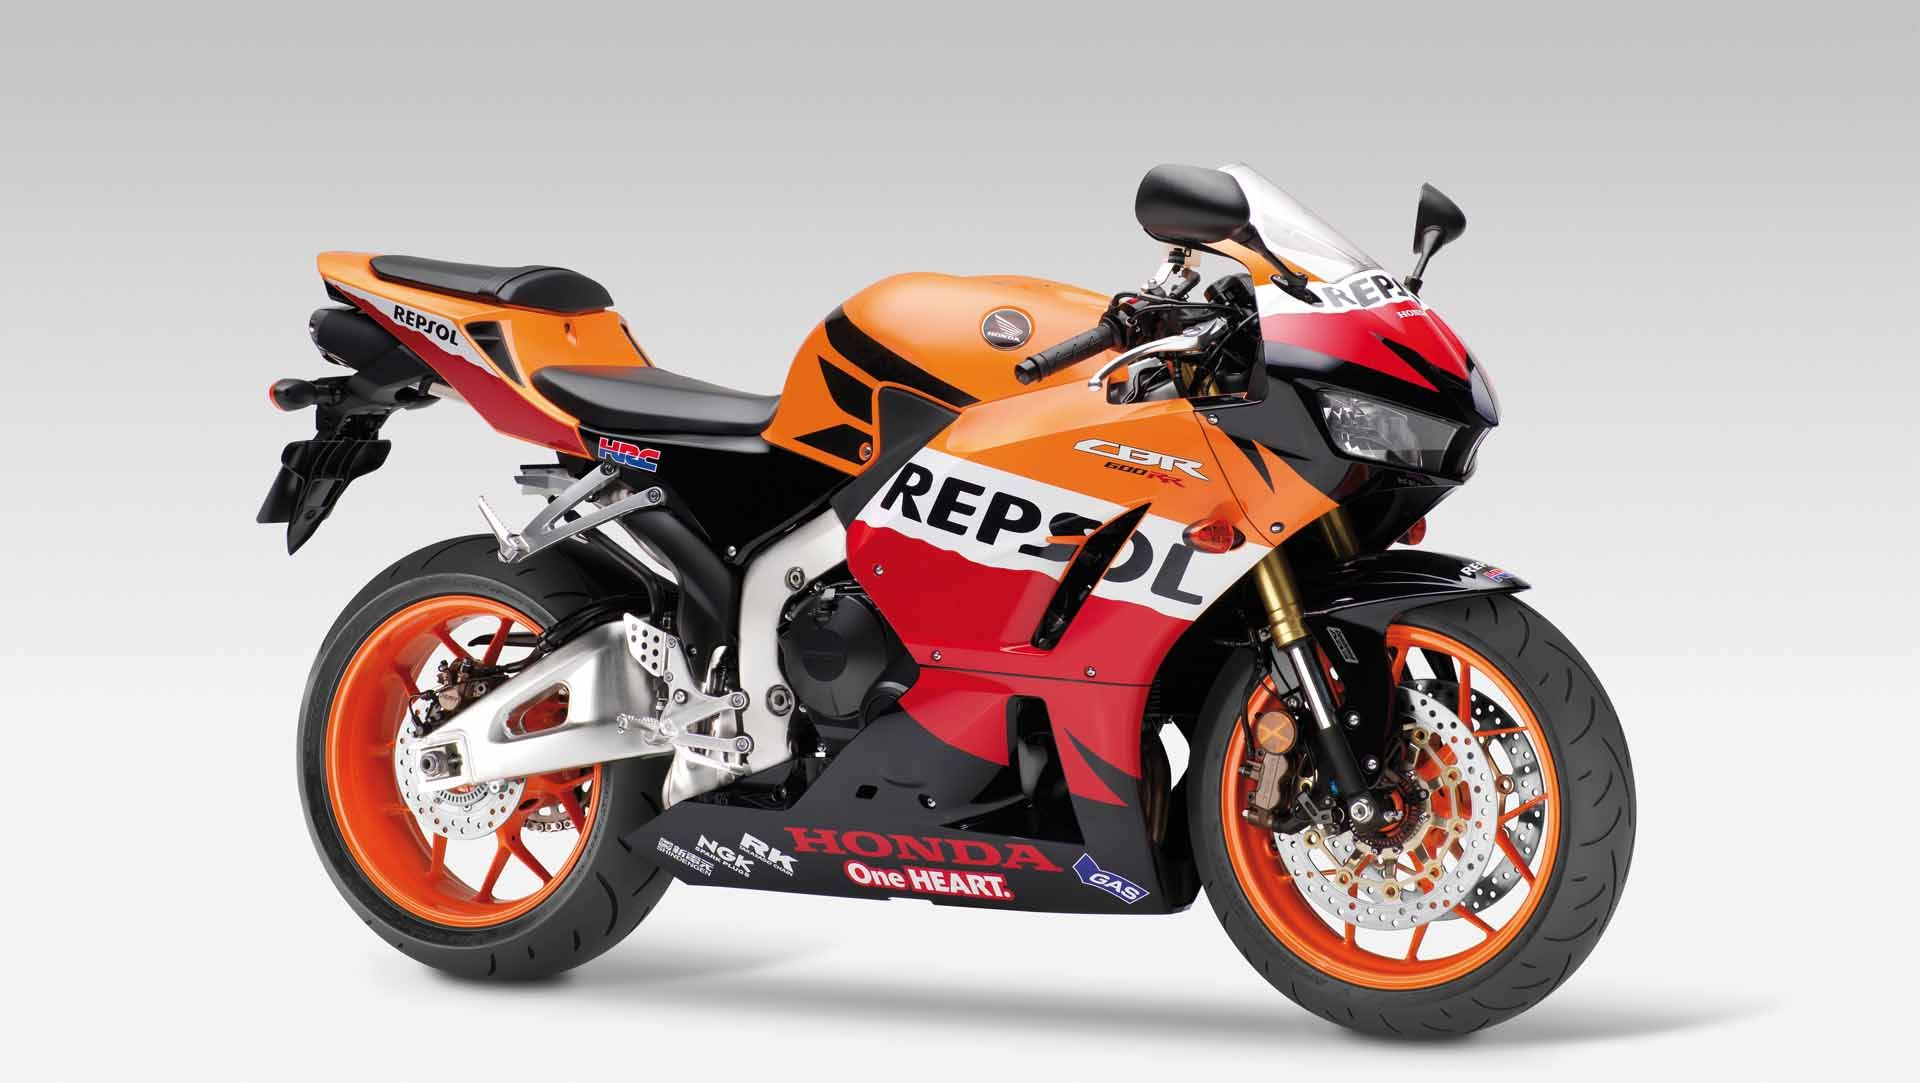 honda-cbr600rr-latest-hd-wallpapers-free-download-9 | latest honda